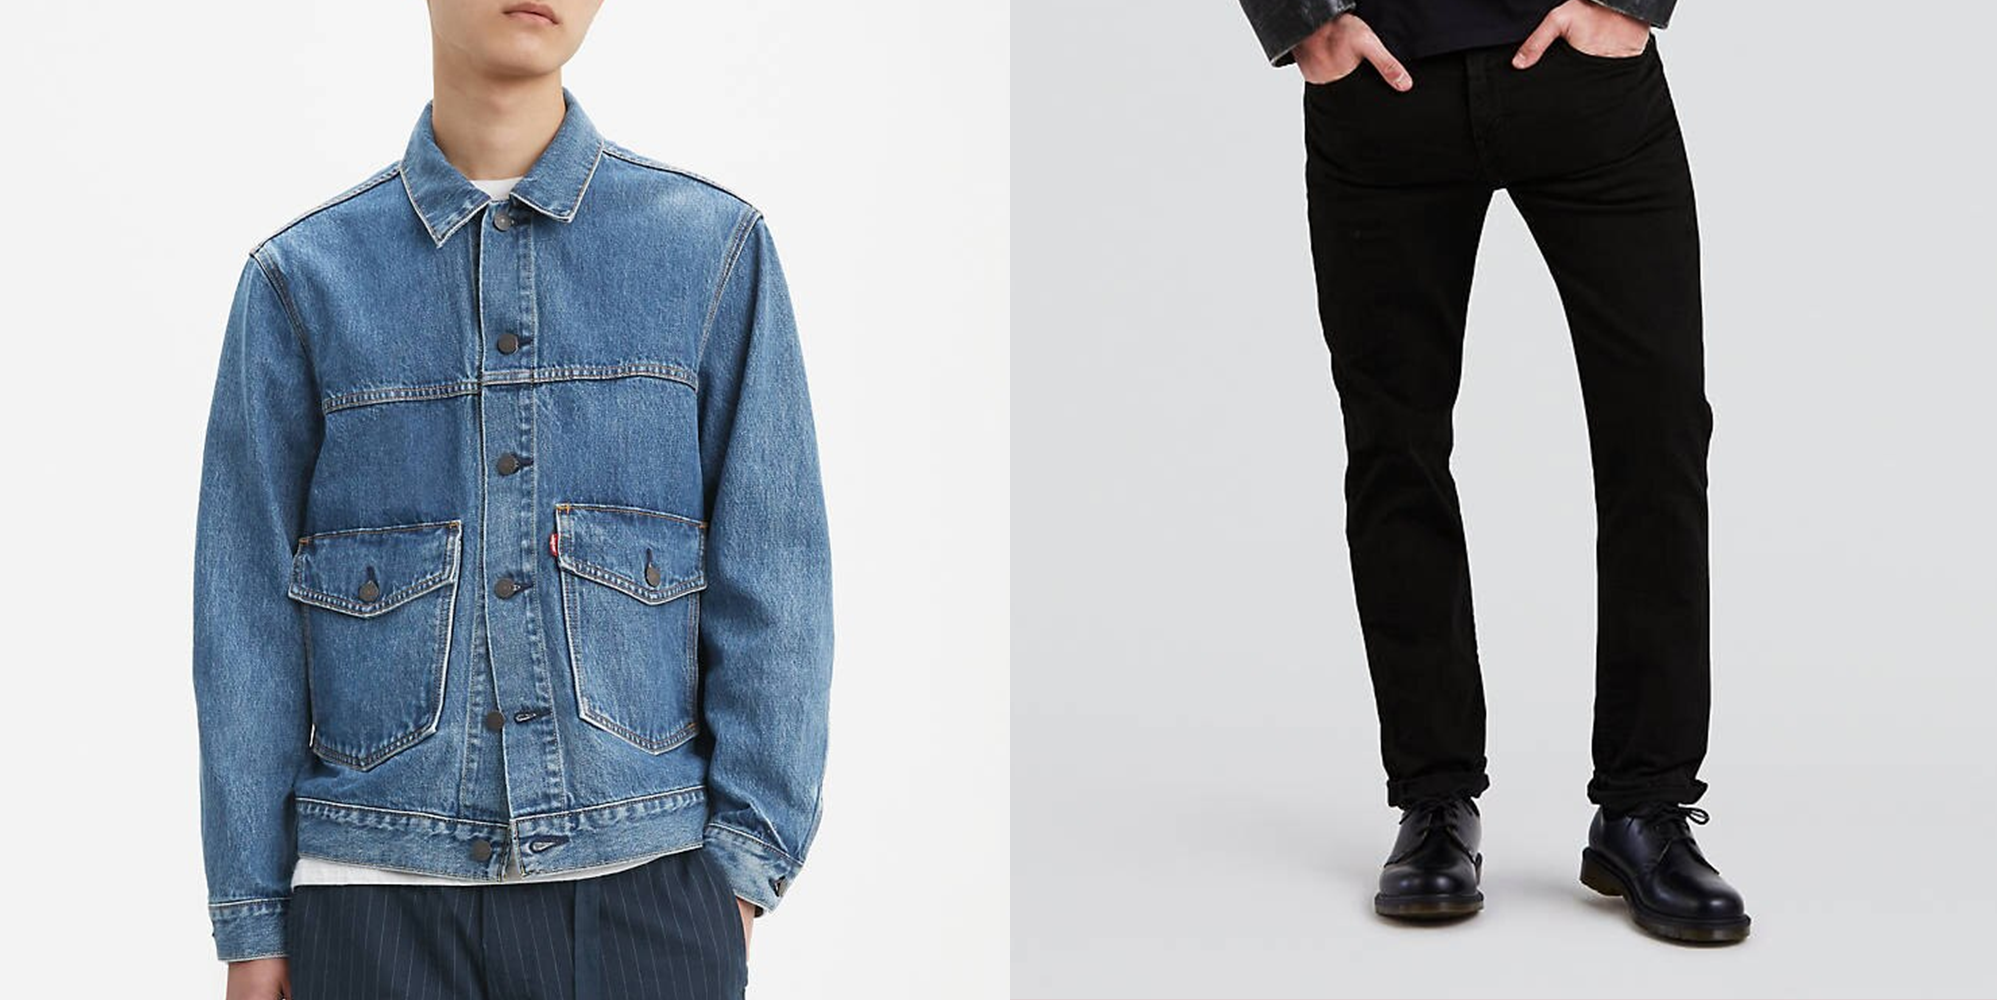 Levi's Is Taking Up to 70% Off Jeans, Jackets, and More in Its Massive Warehouse Sale